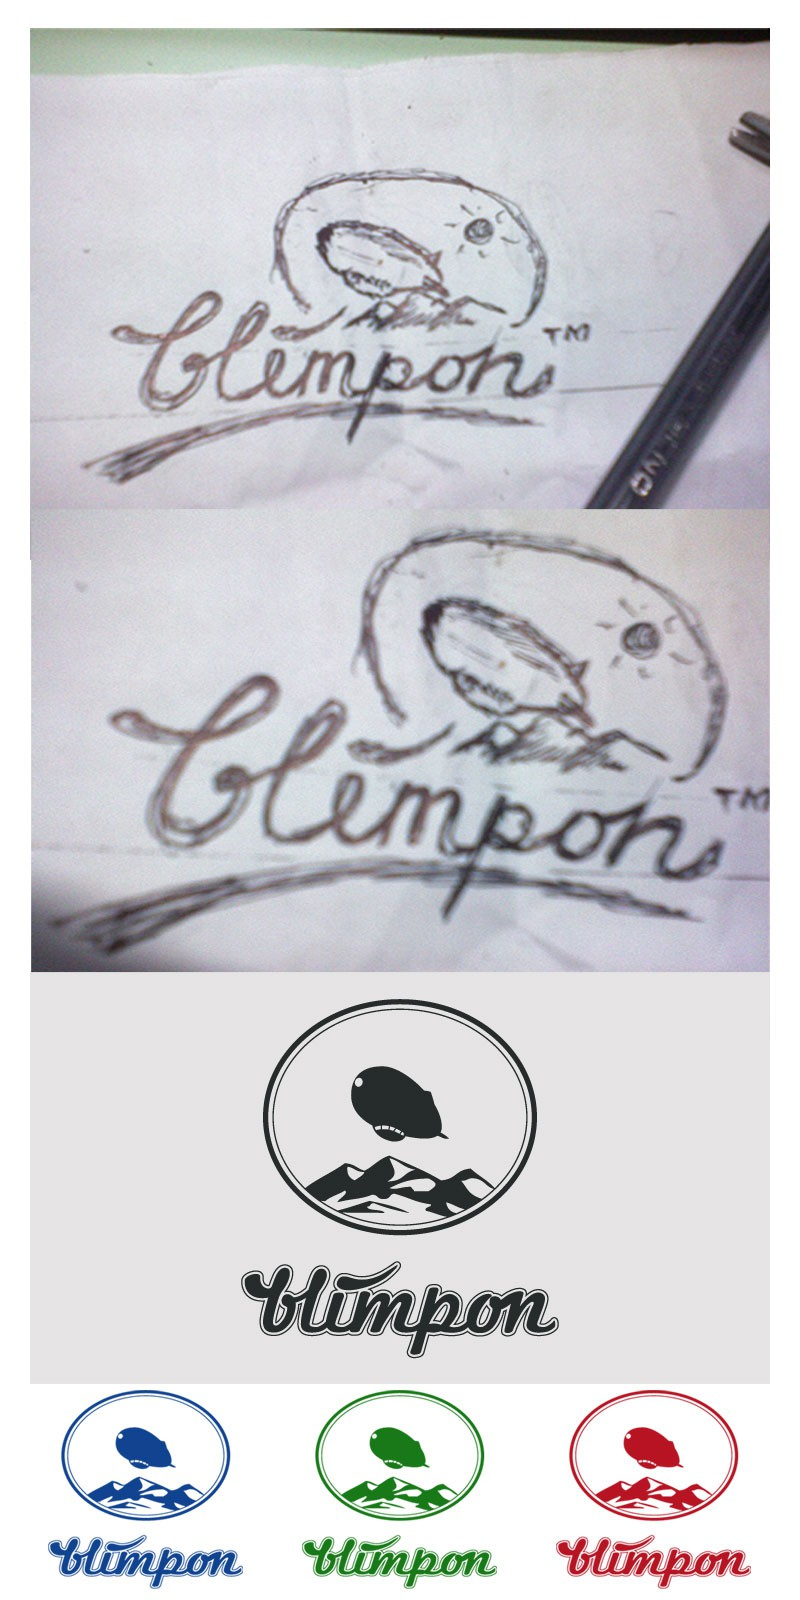 logo for blimpon